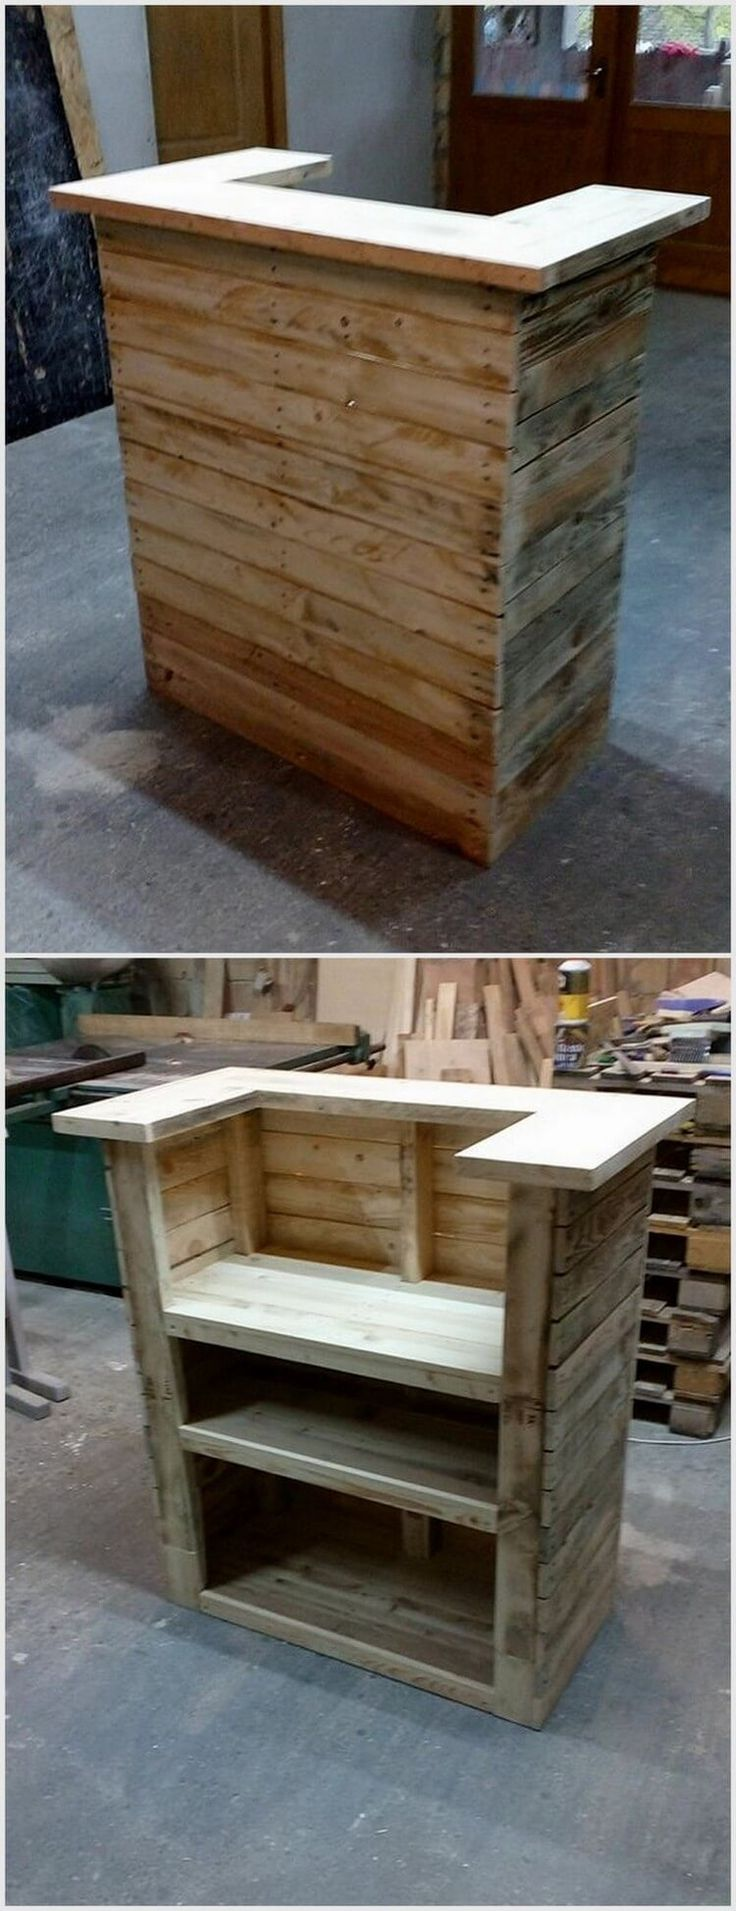 3996 best Pallet ideas images on Pinterest | Woodworking, Pallet ...